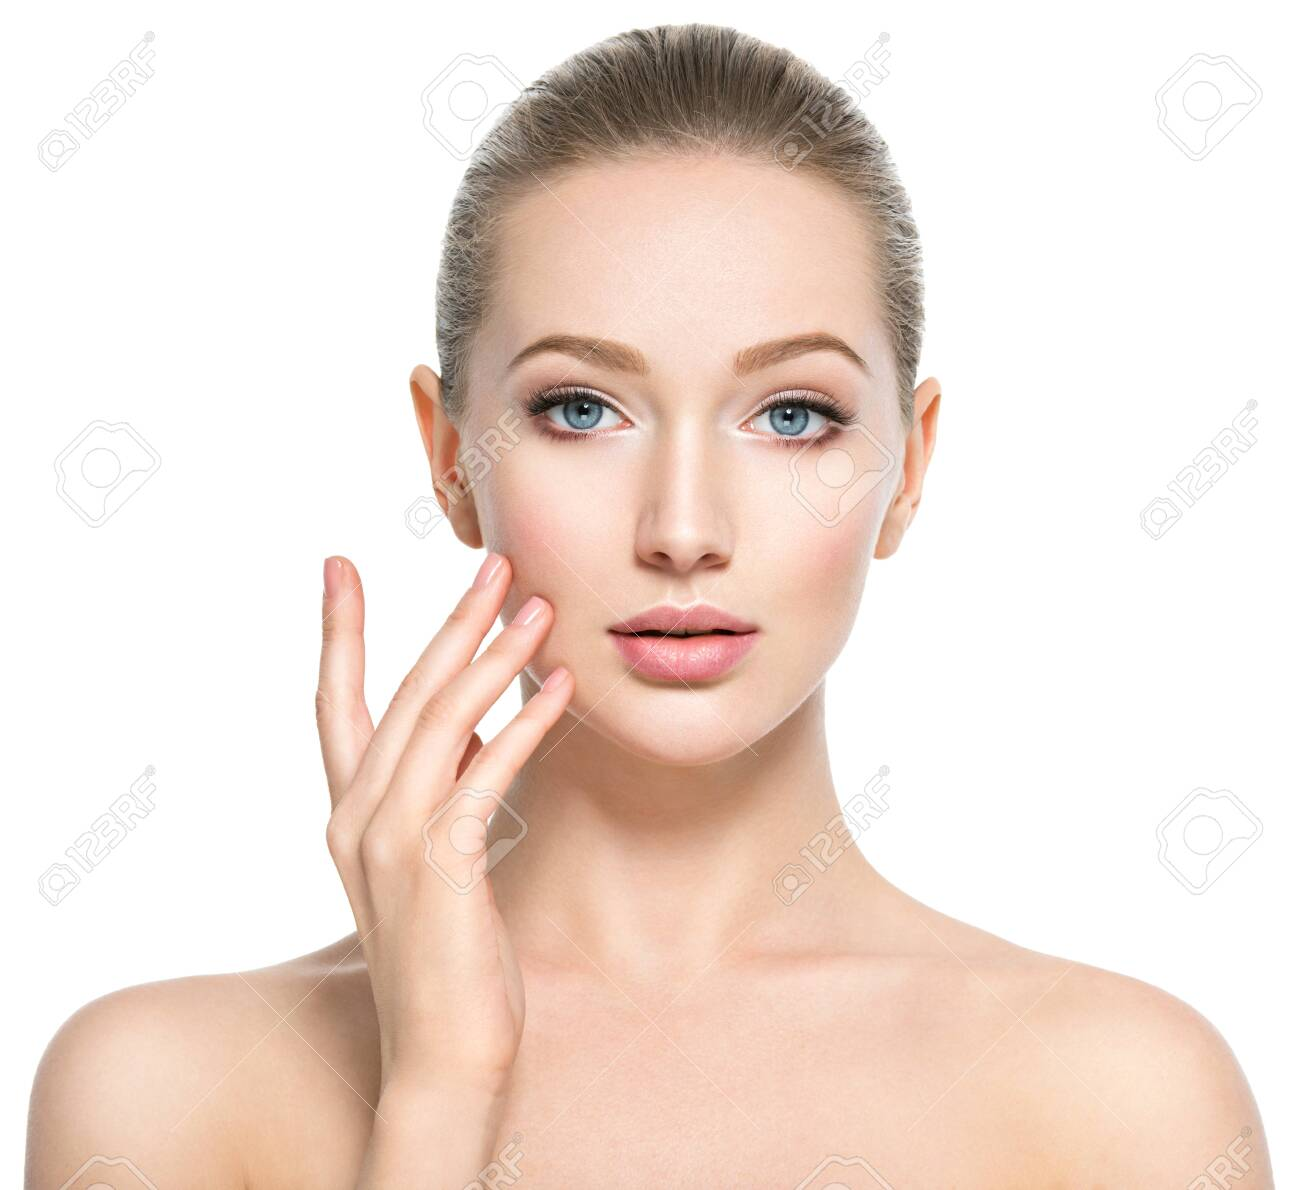 Beautiful face of young caucasian woman with perfect health skin - isolated on white. Skin care concept. Female Model touches face. - 122677847